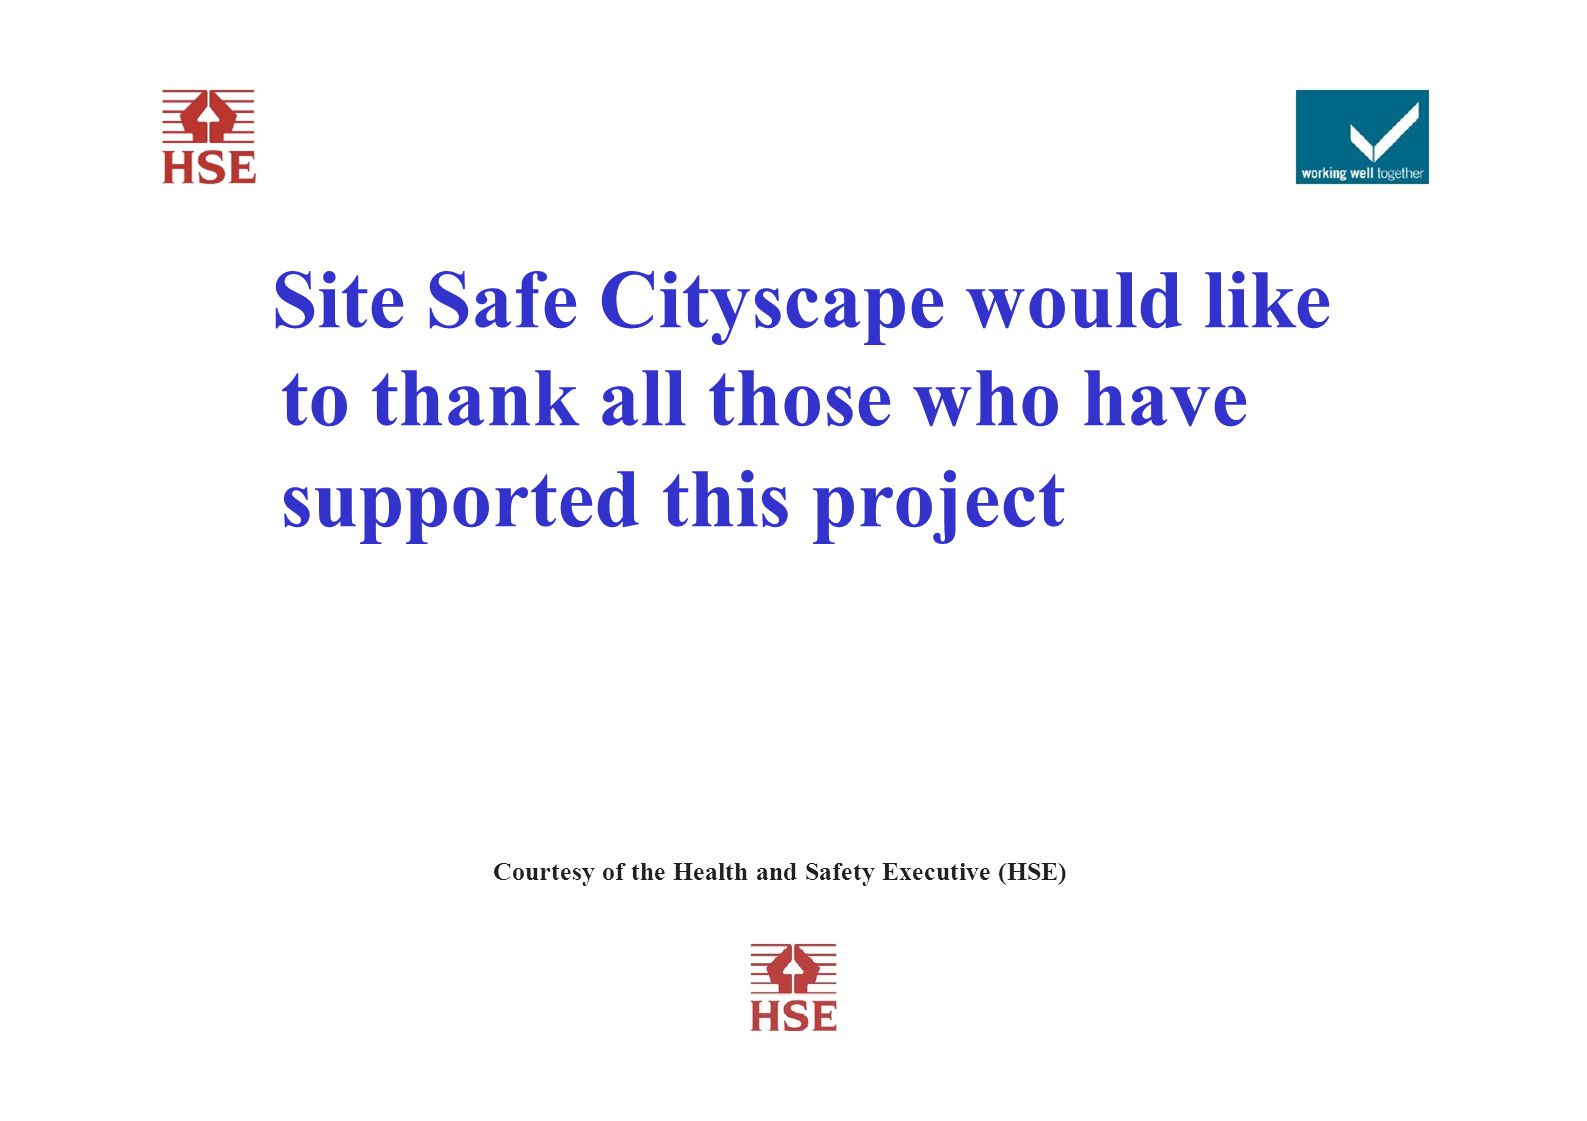 Site Safe Cityscape would like to thank all those who have